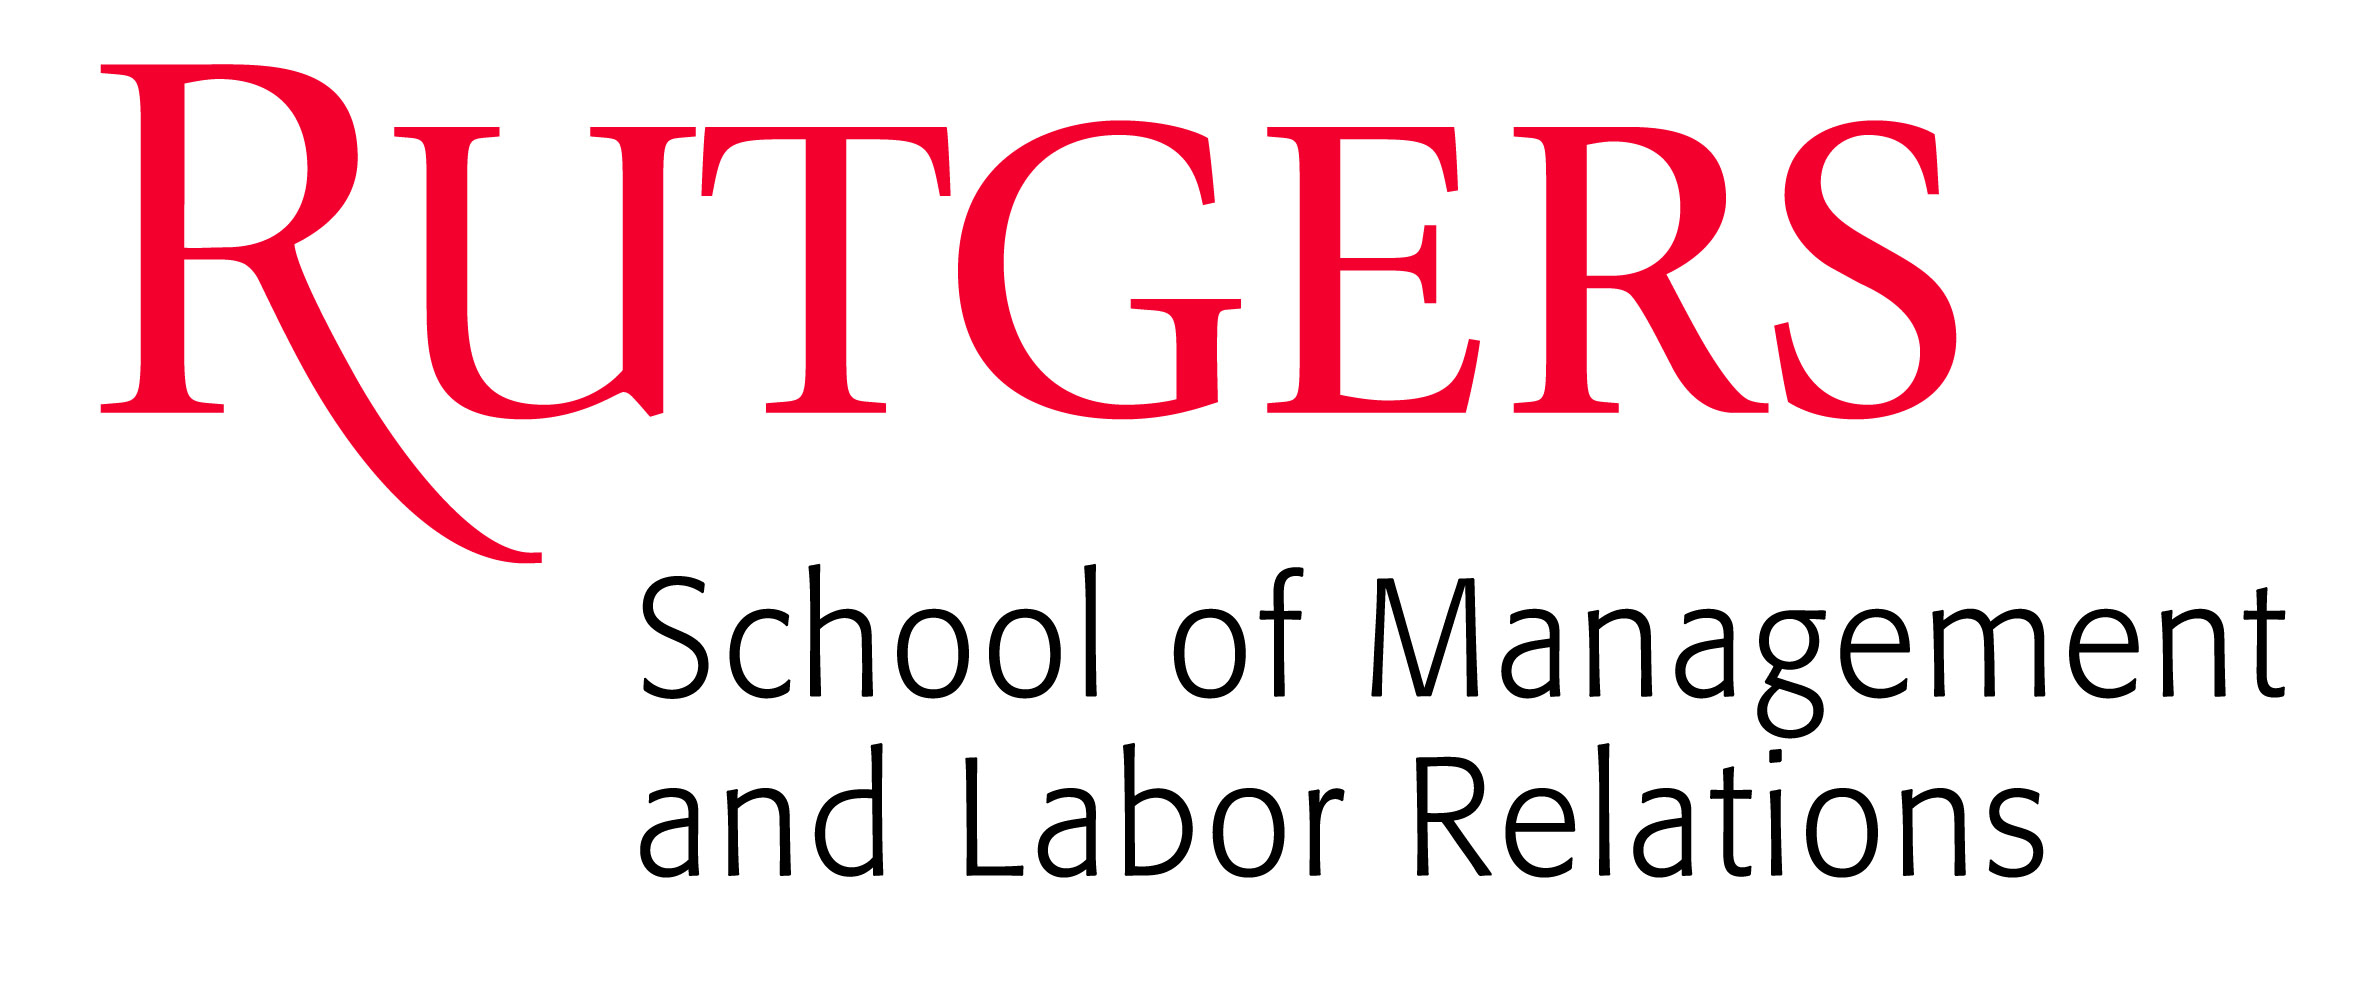 The School of Management and Labor Relations (SMLR) is a source of expertise on the world of work, building effective and sustainable organizations, and the changing employment relationship.